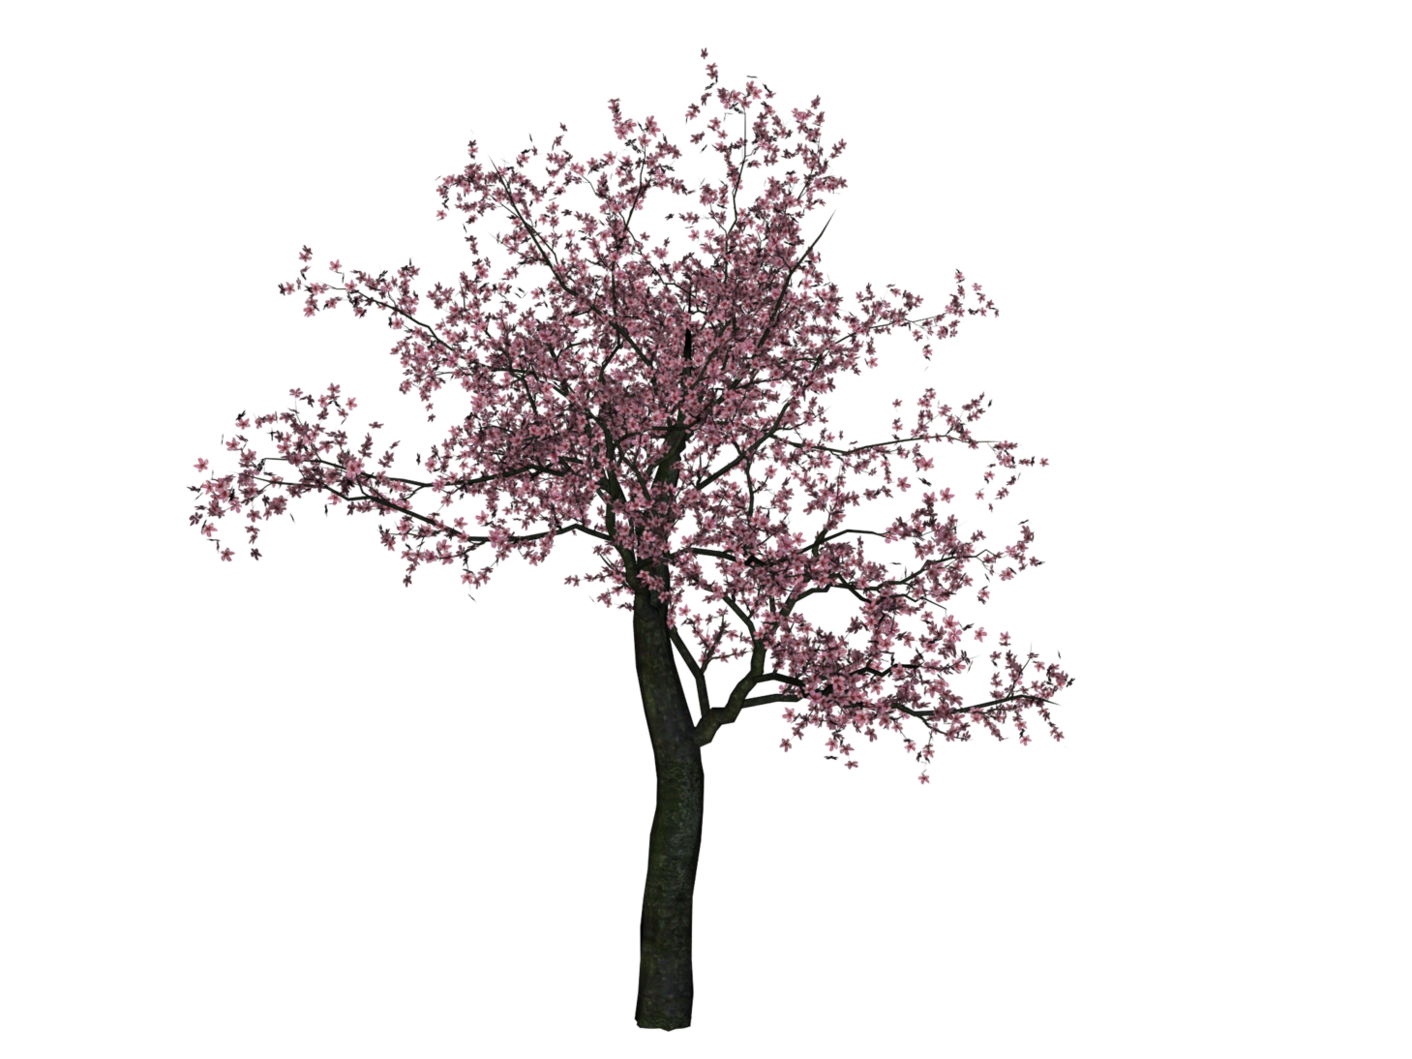 Cherry blossom tree png. Hd transparent image